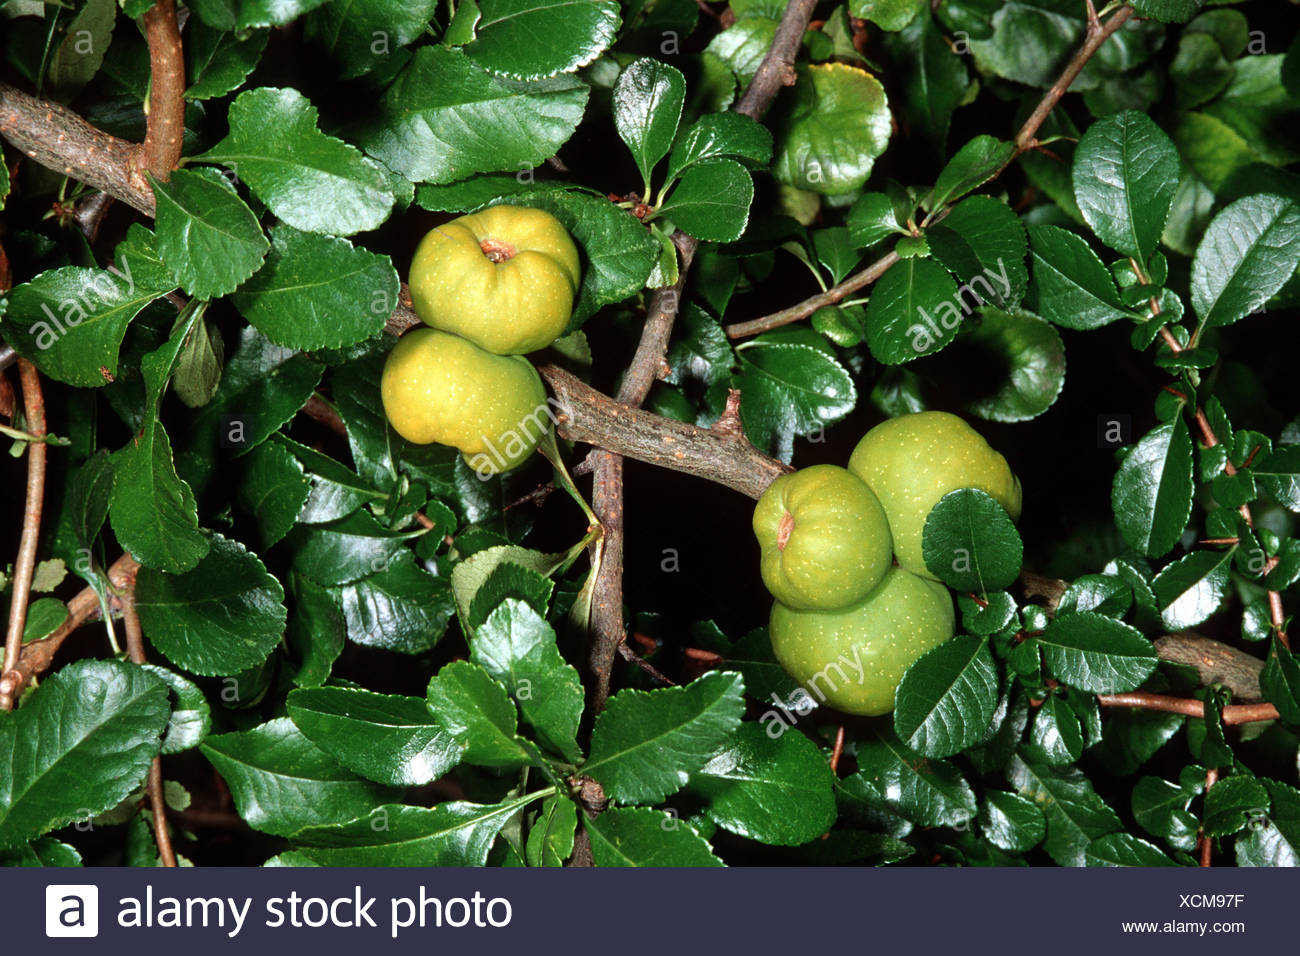 Quince stock photos quince stock images alamy japanese quince chaenomeles japonica choenomeles japonica blooming stock image biocorpaavc Image collections